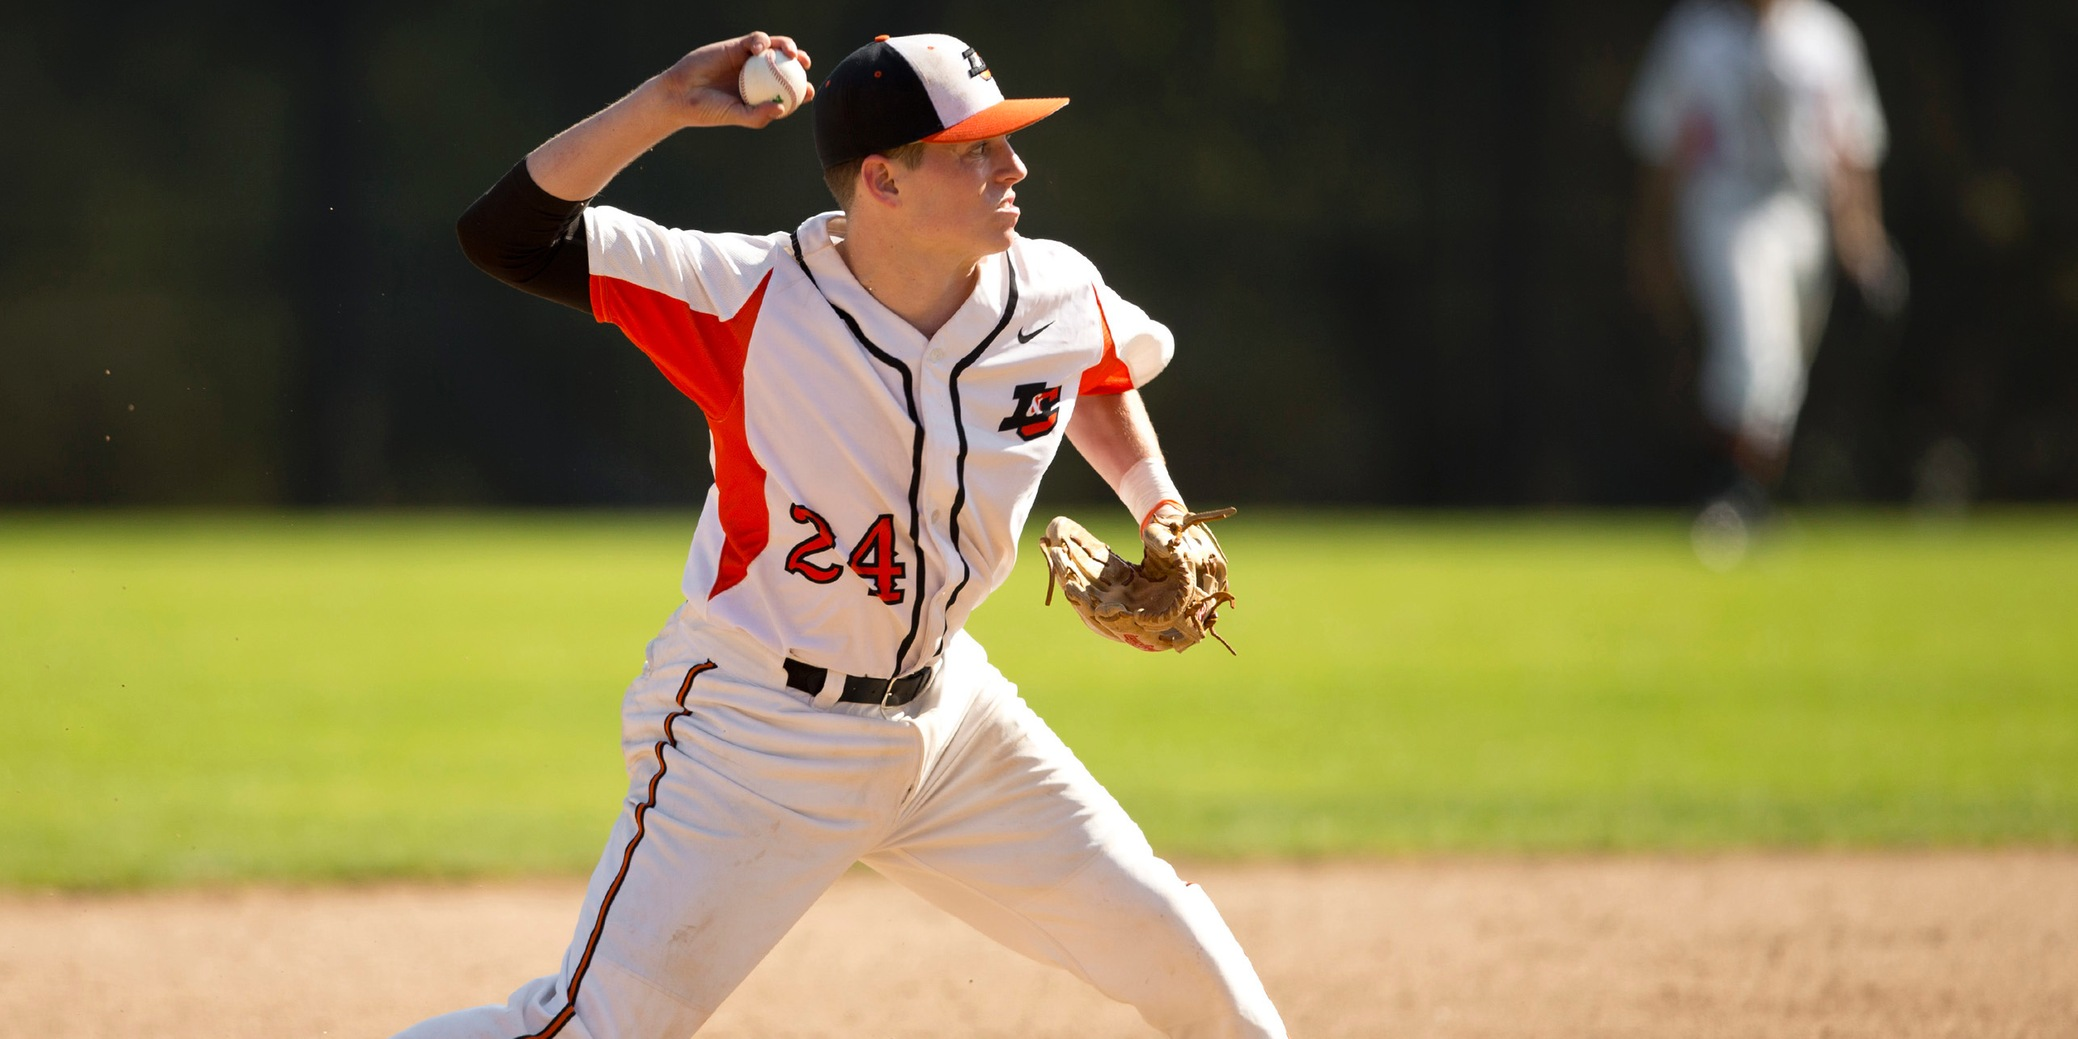 Pios nearly total as many hits, but lose in season opener